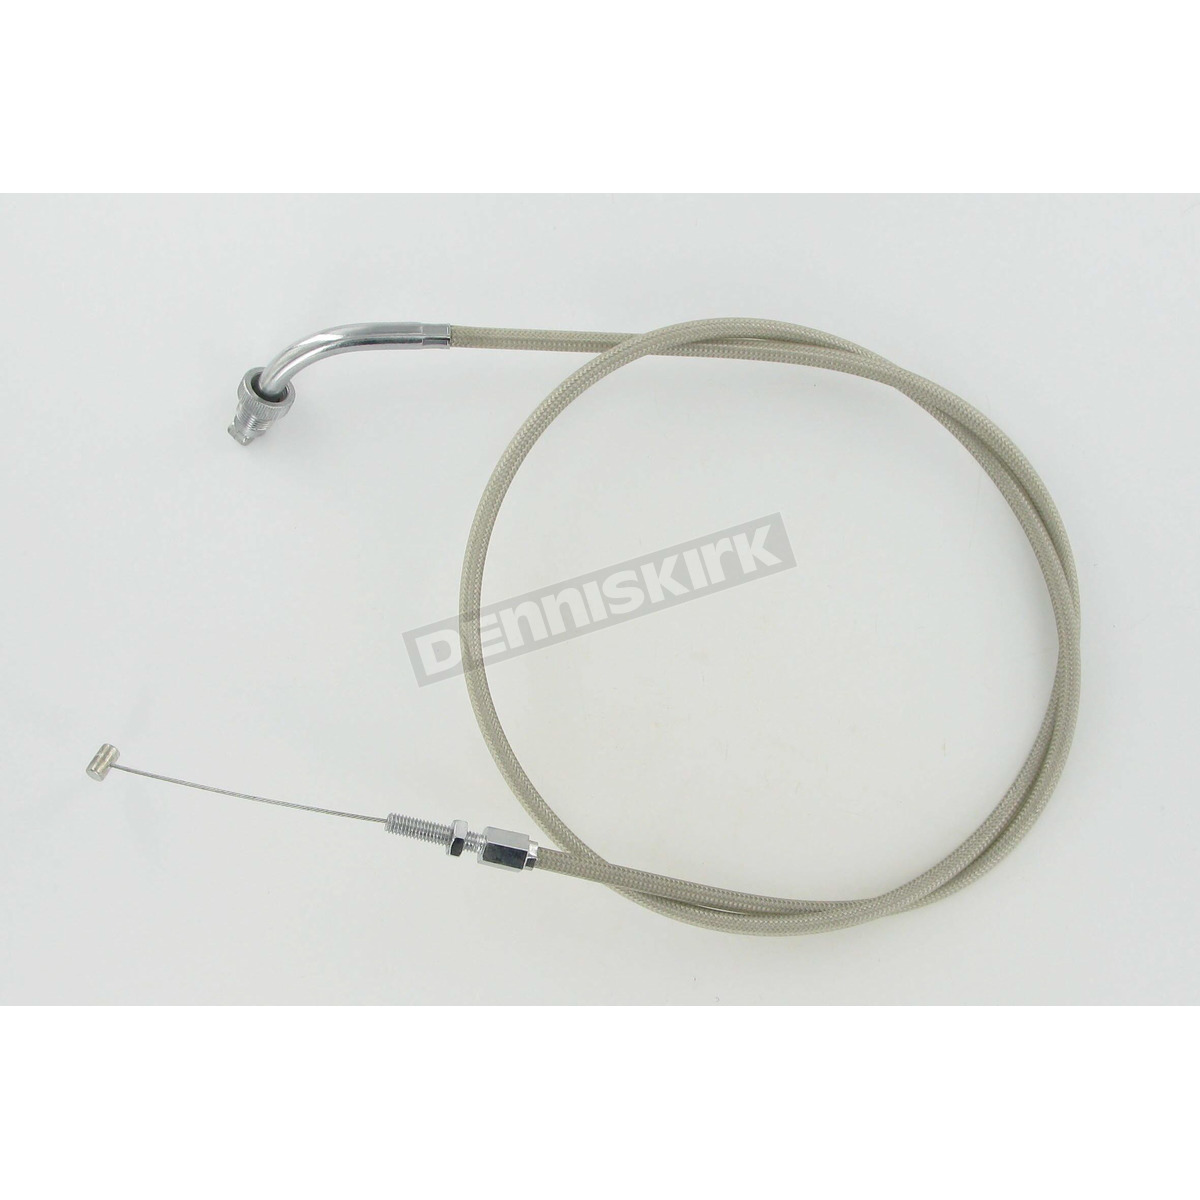 Armored Cable Stainless : Motion pro in armor coat braided stainless steel push